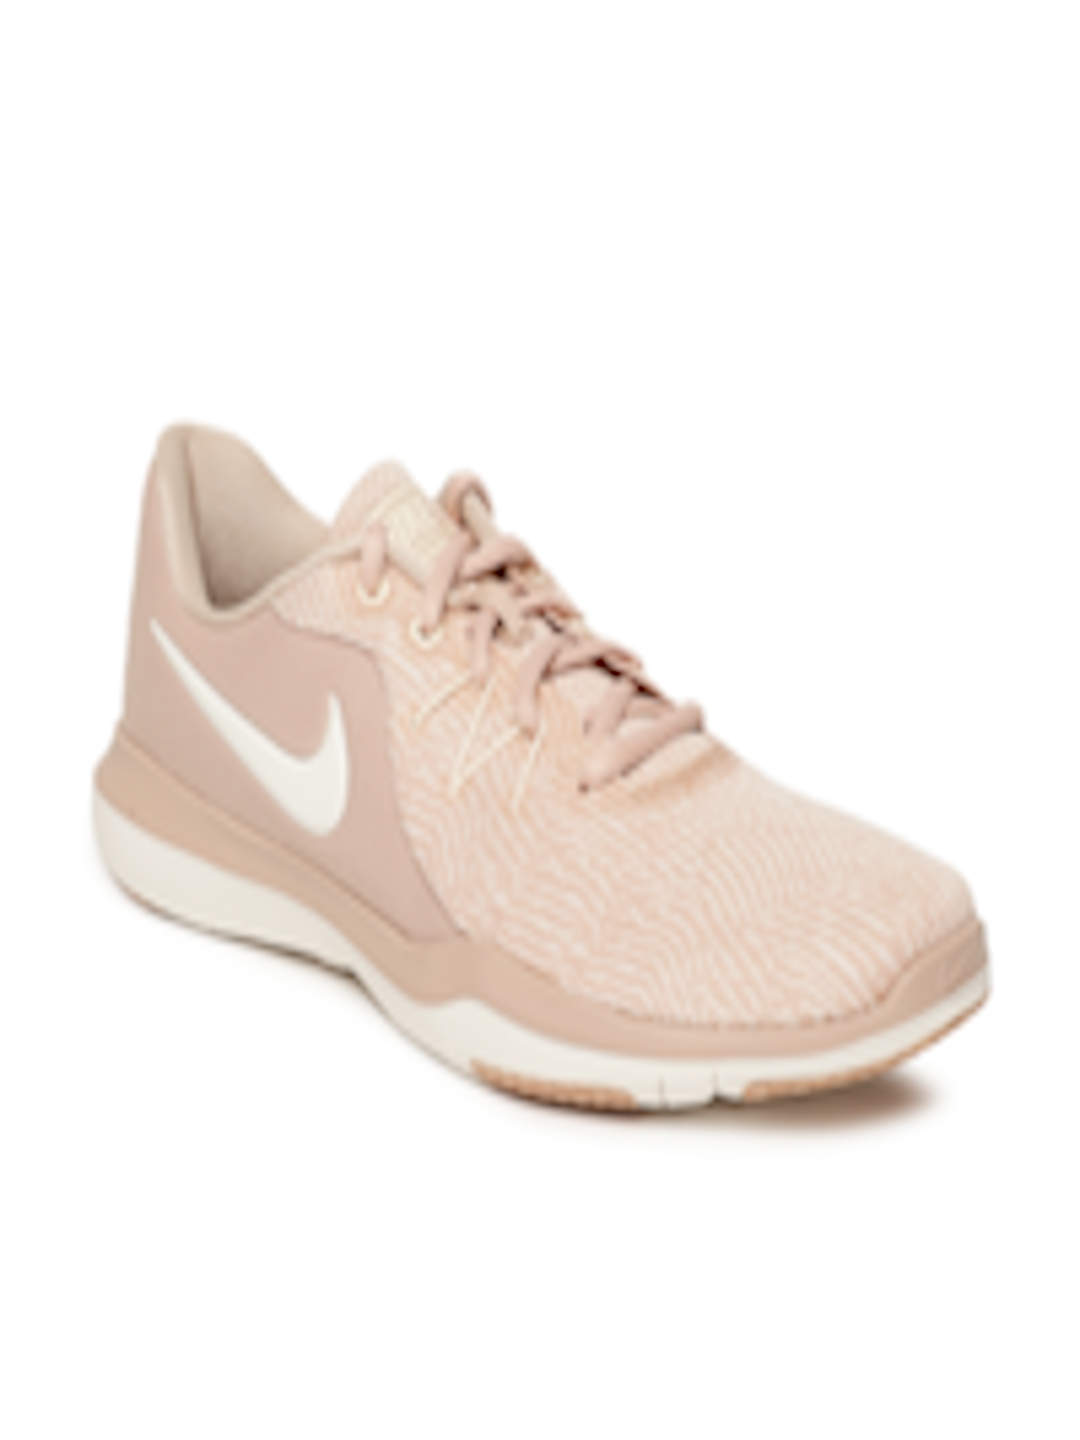 443b2a452499d Buy Nike Women Peach Coloured Flex Supreme TR 6 Training Or Gym Shoes -  Sports Shoes for Women 6676967